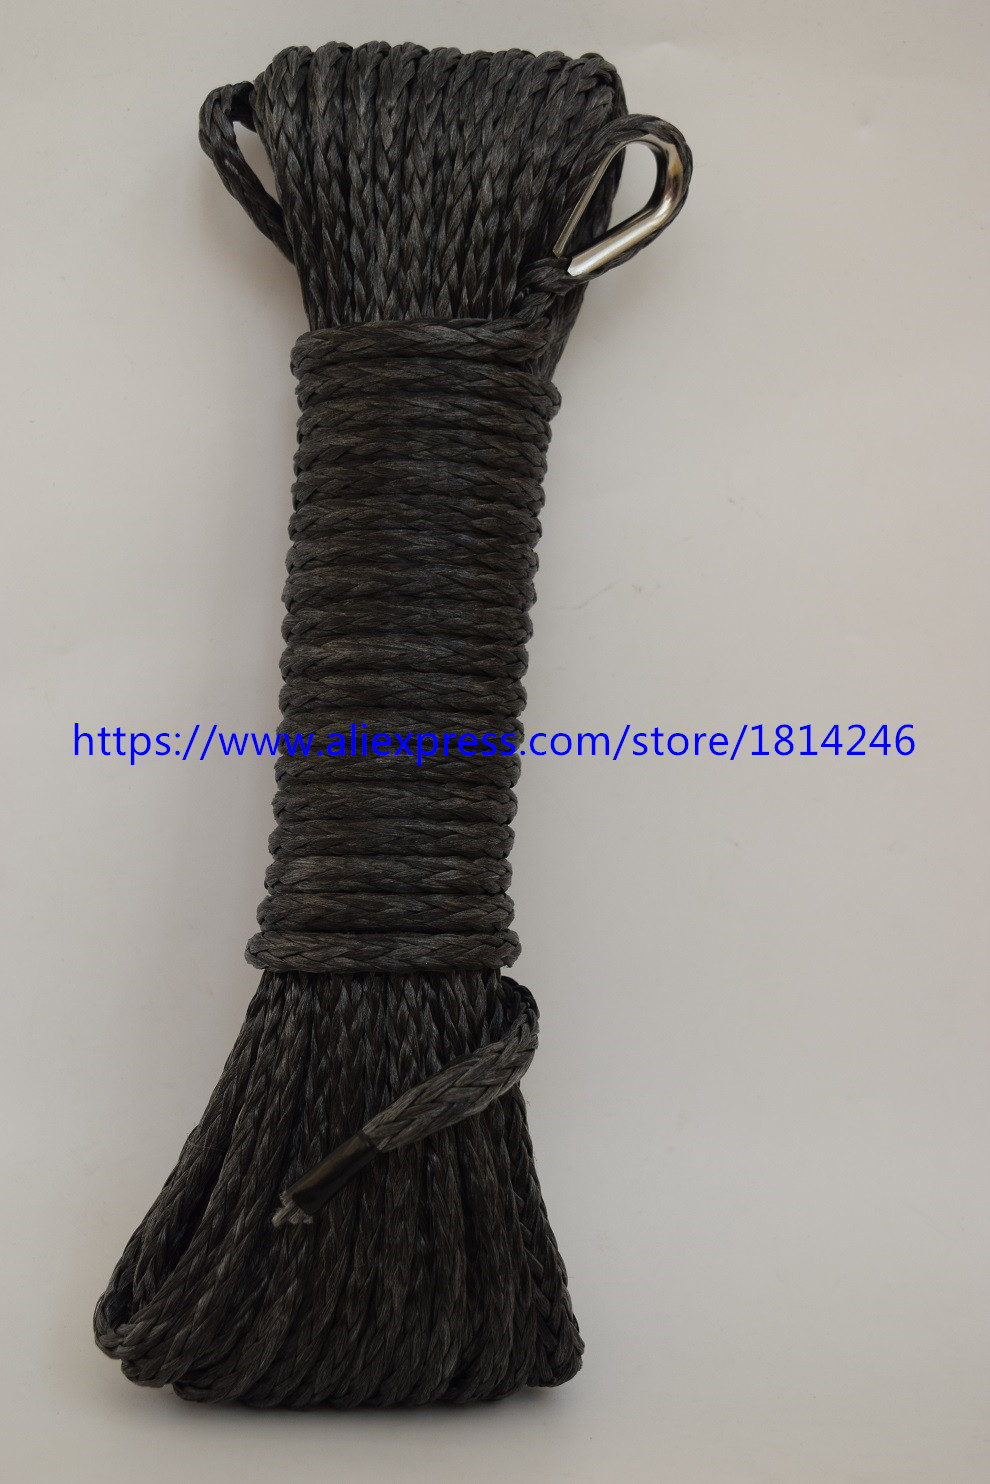 Black 5mm*15m Synthetic Rope,ATV Winch Line,Rope for ATV Winch,ATV Winch Accessories,Spectra Winch Rope